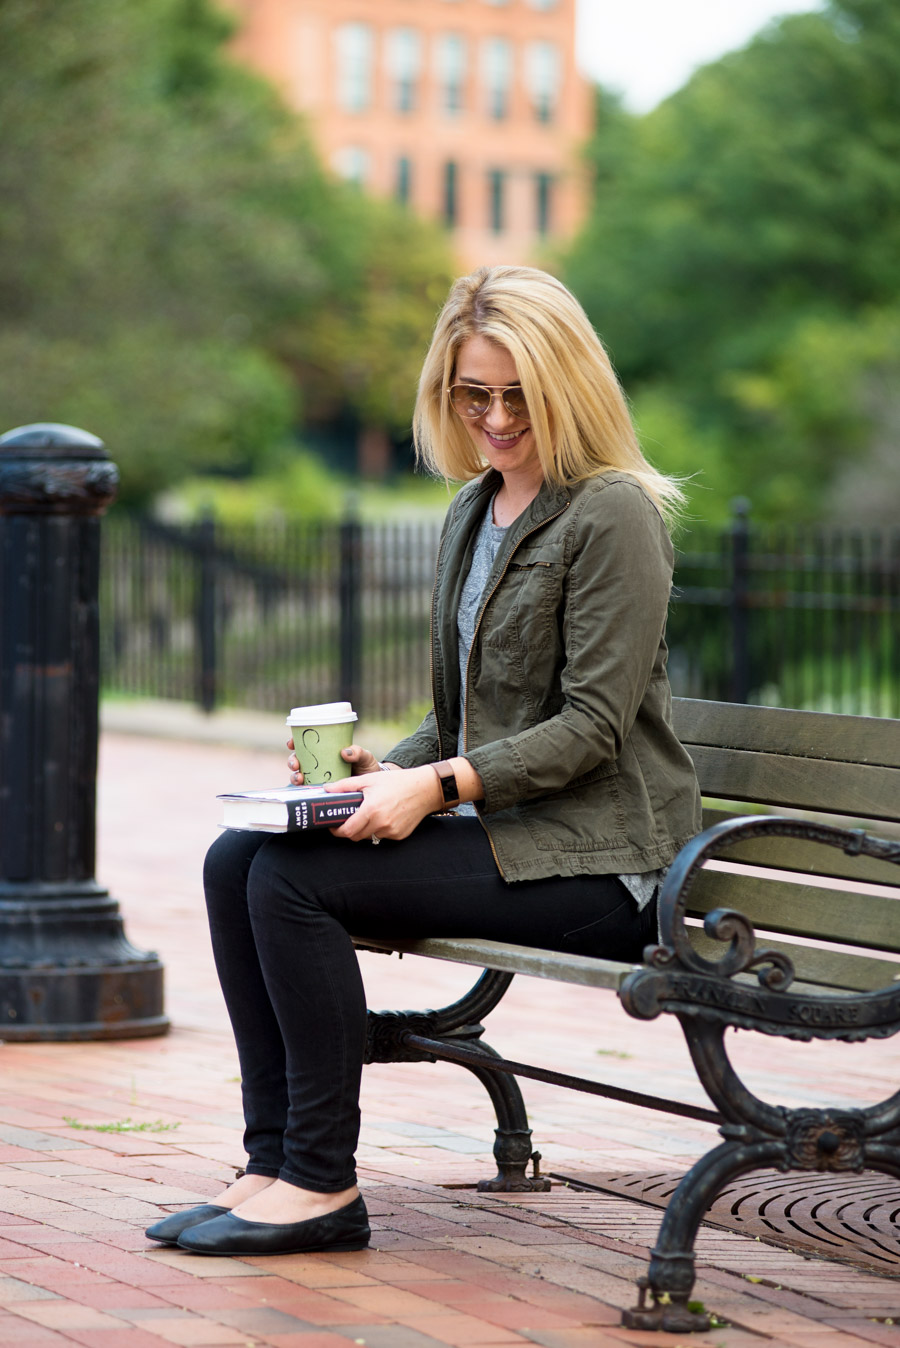 Black Skinny Jeans + Olive Green Military Jacket - Fall 2017 Outfit Ideas for Women over 30